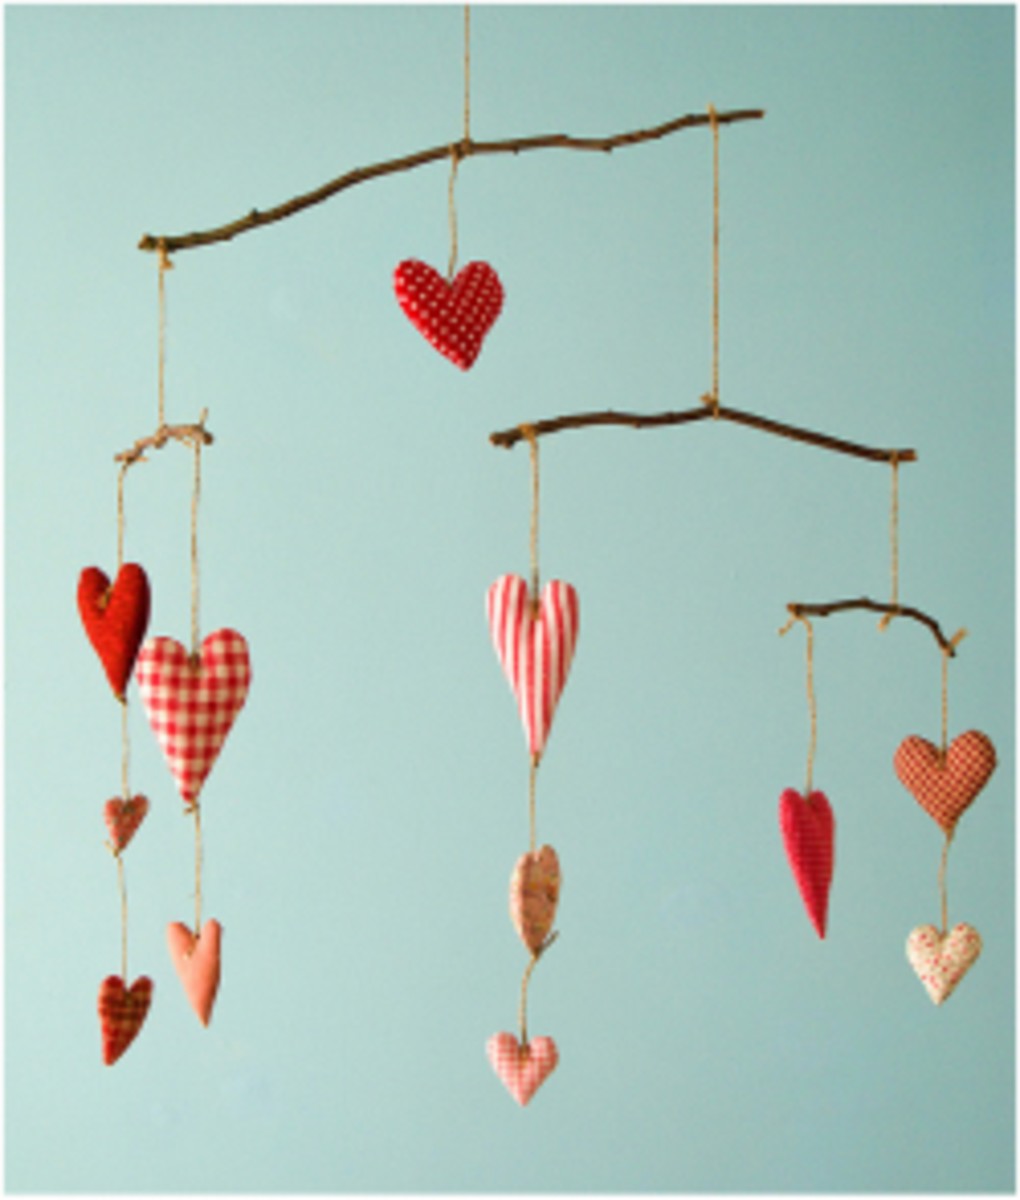 ★ Love-Themed Crafts For Valentine's Day, Romantic Dates & Home Décor | Craft Tutorials & Gifts ★